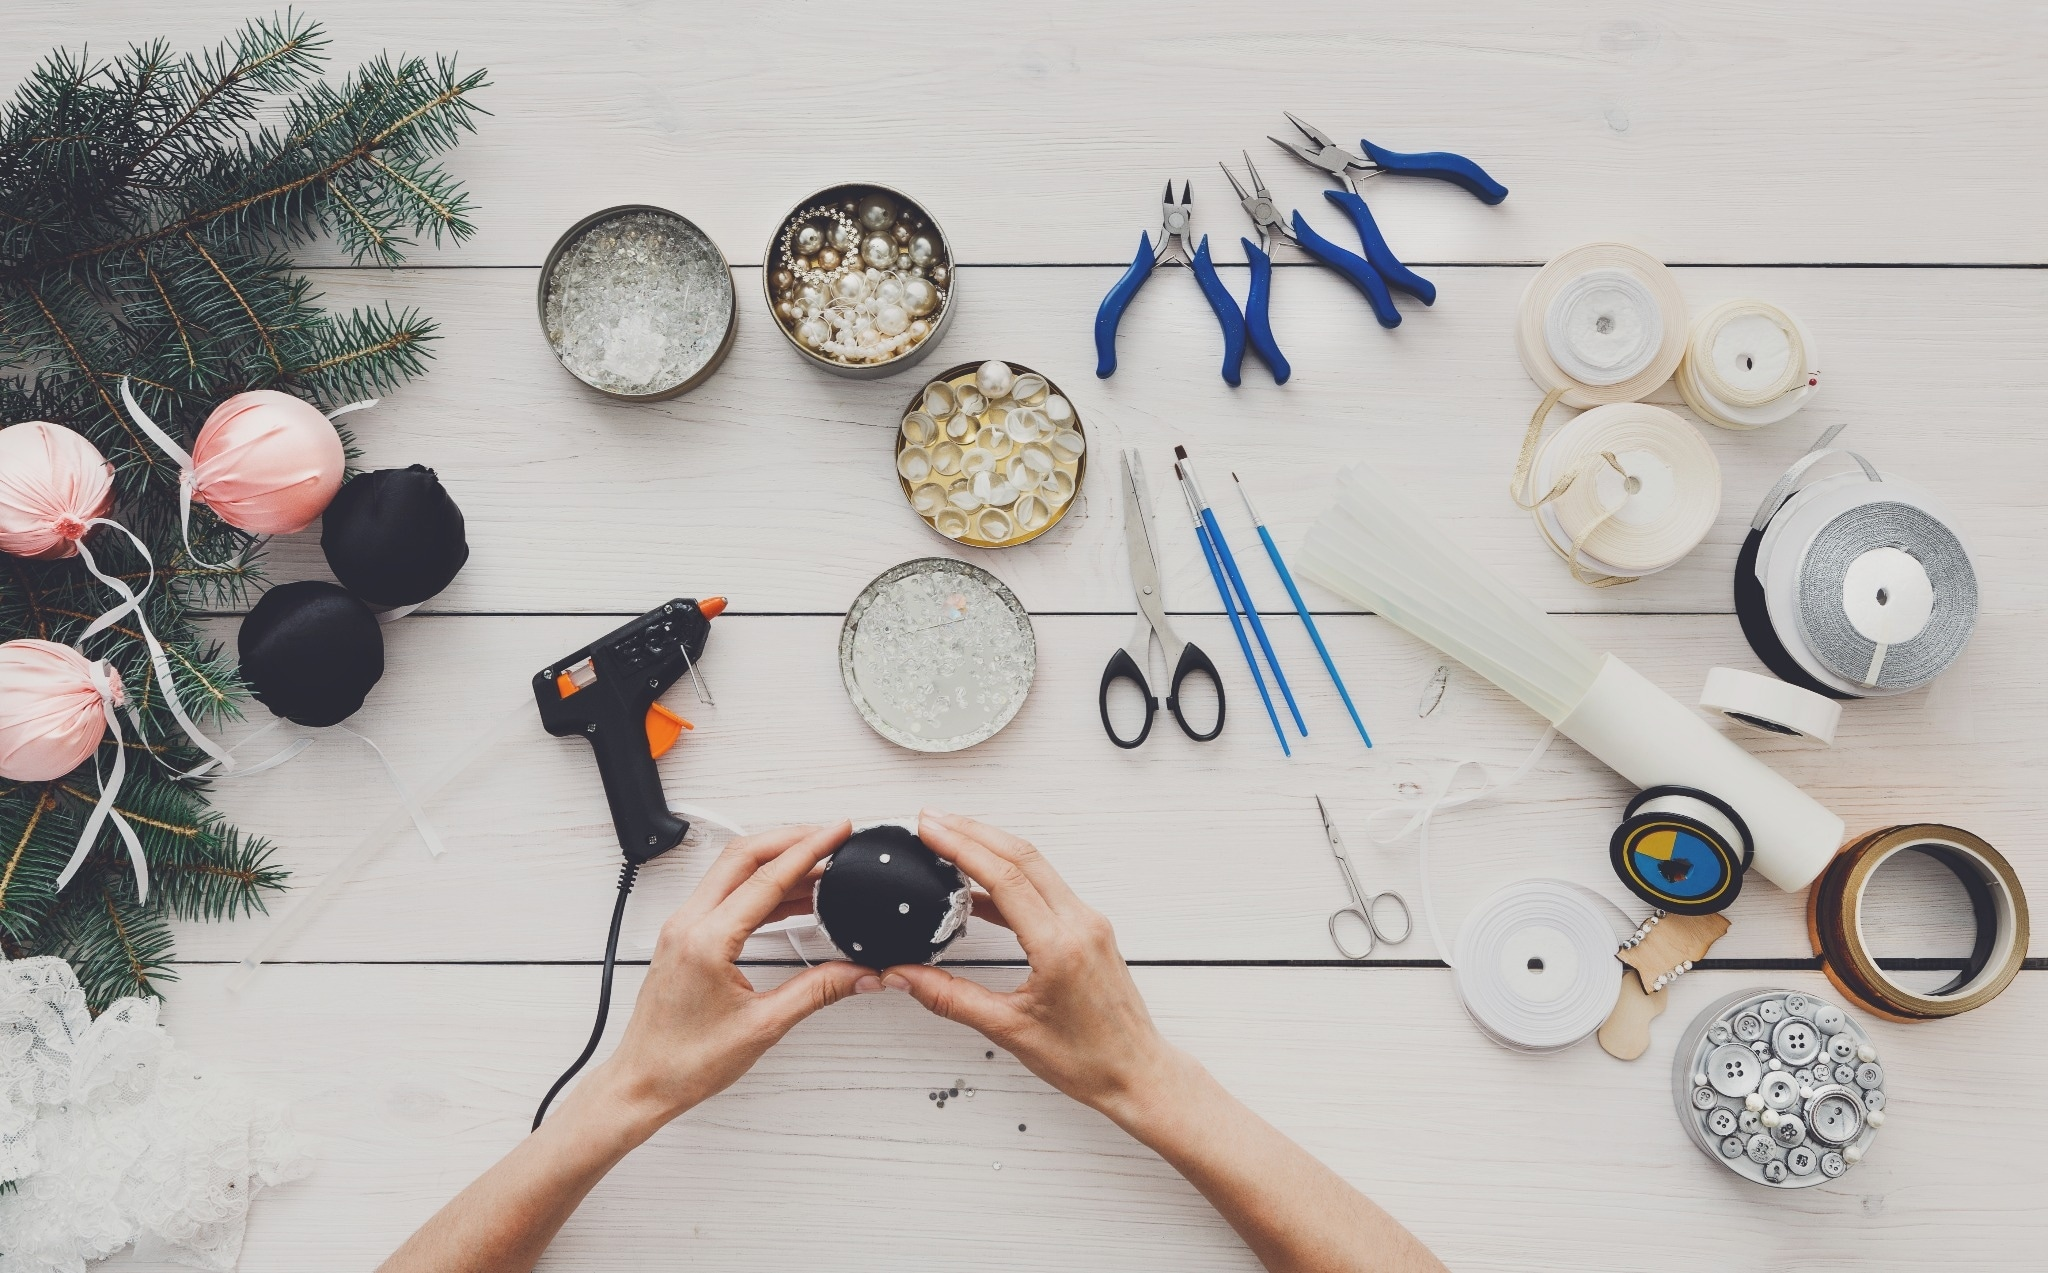 From the Workshop to the Web: These are the Top 20 Craft & DIY Micro-Influencers